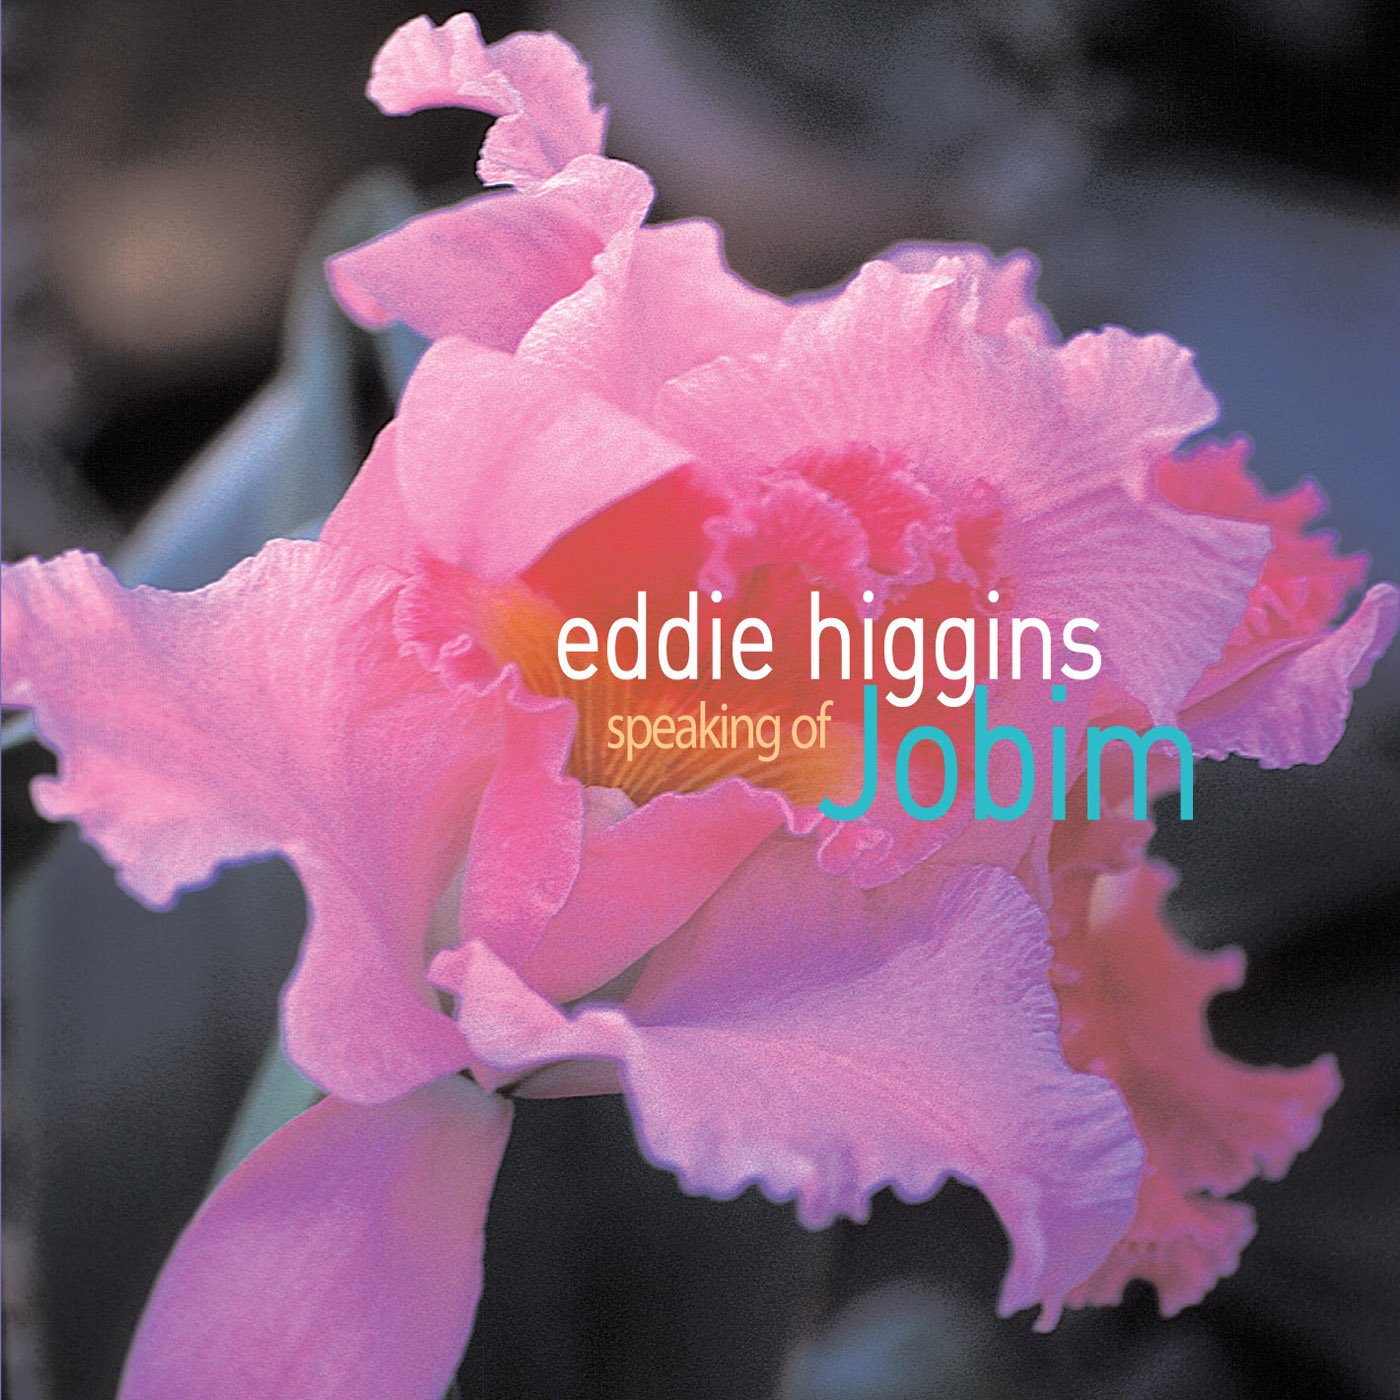 Speaking Of Jobim by Eddie Higgins cover